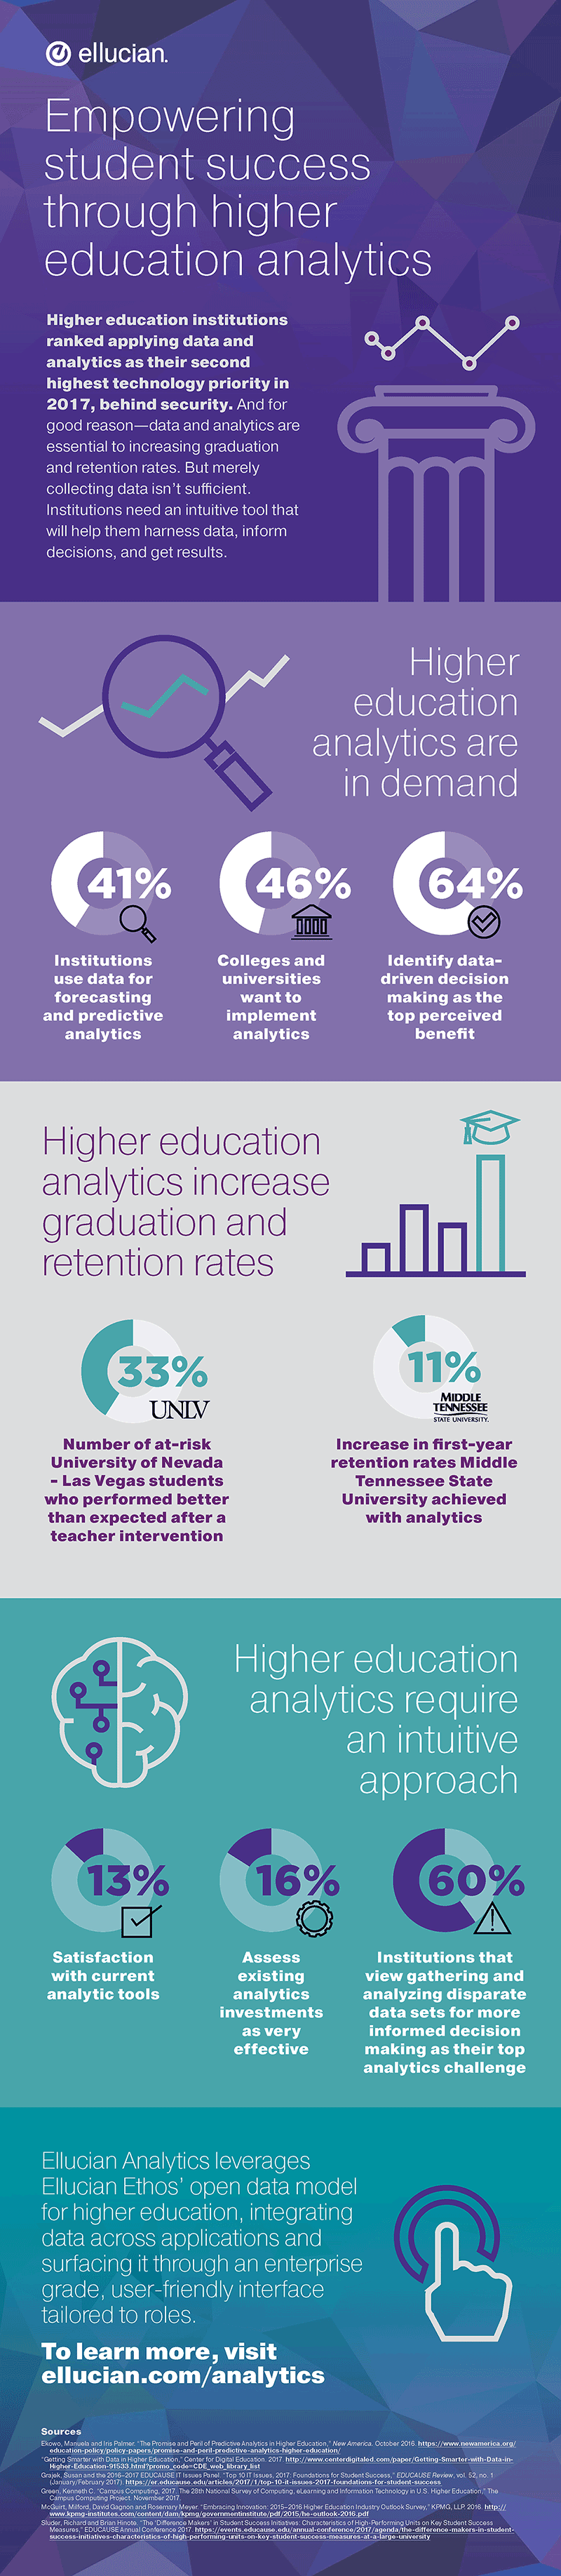 Empowering student success through higher education analytics